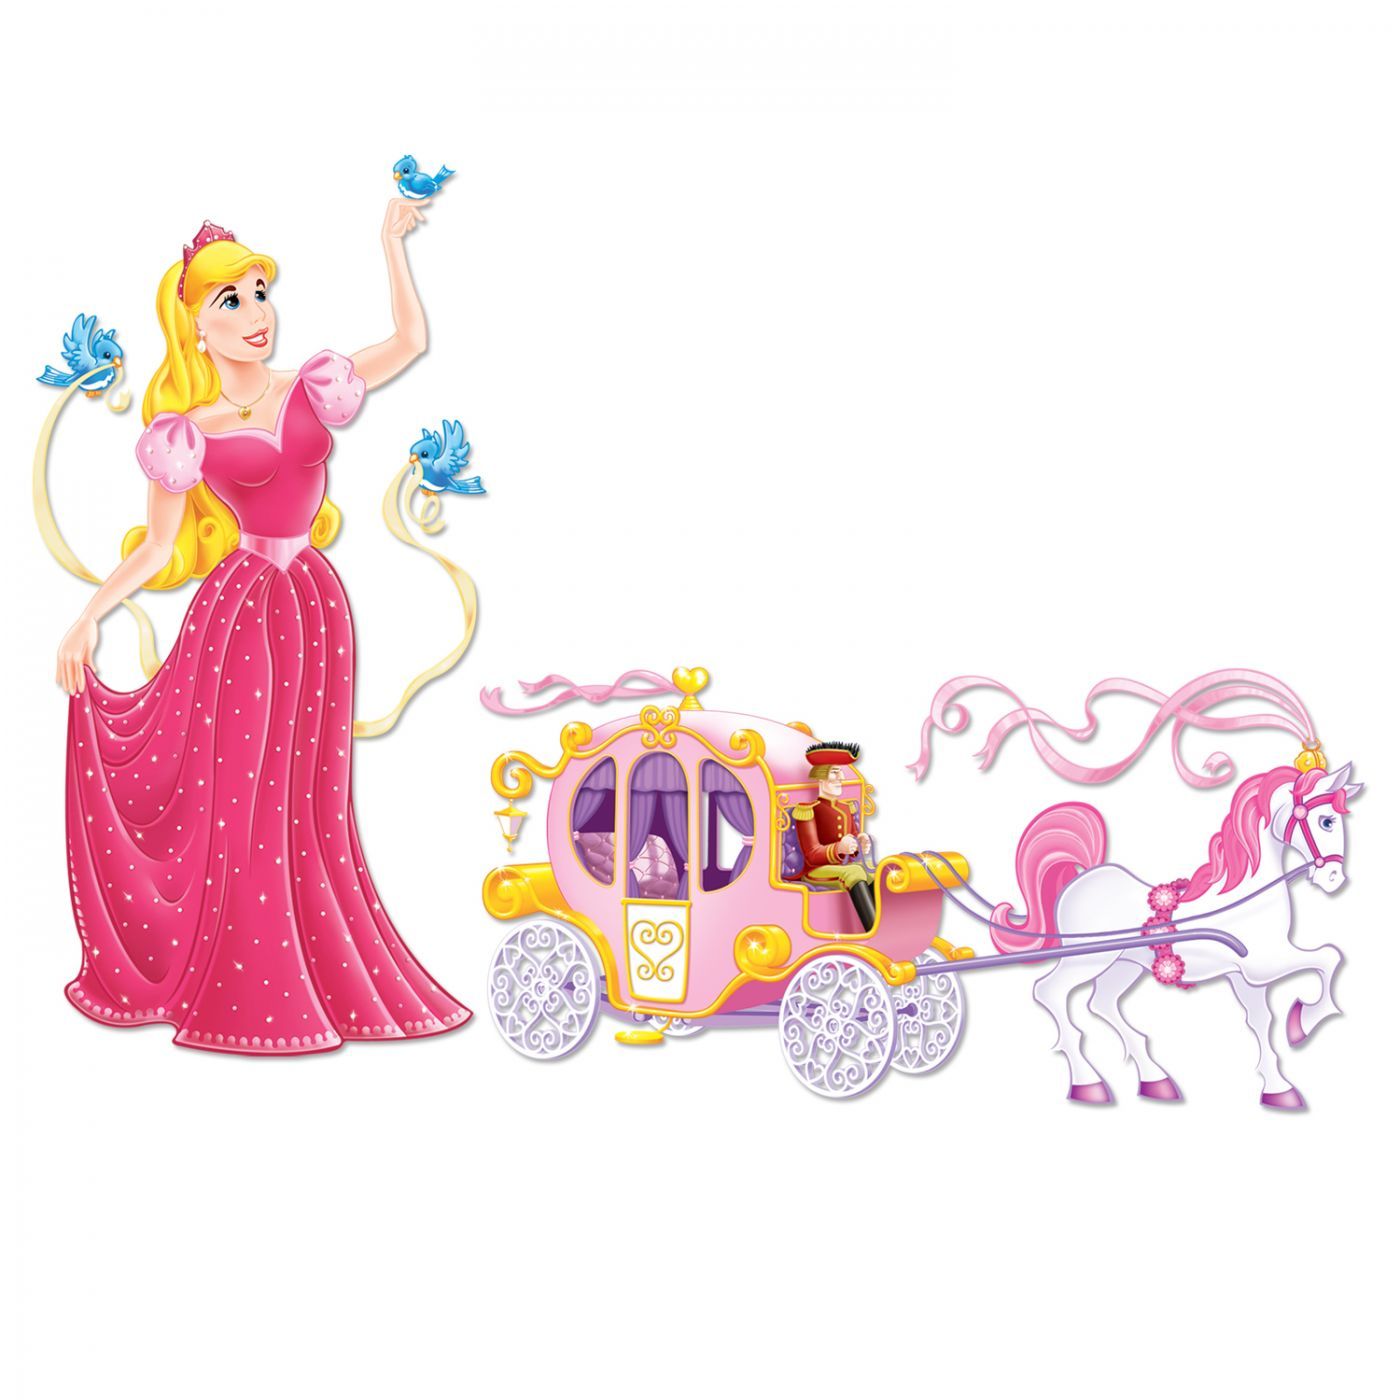 Princess & Carriage Props image